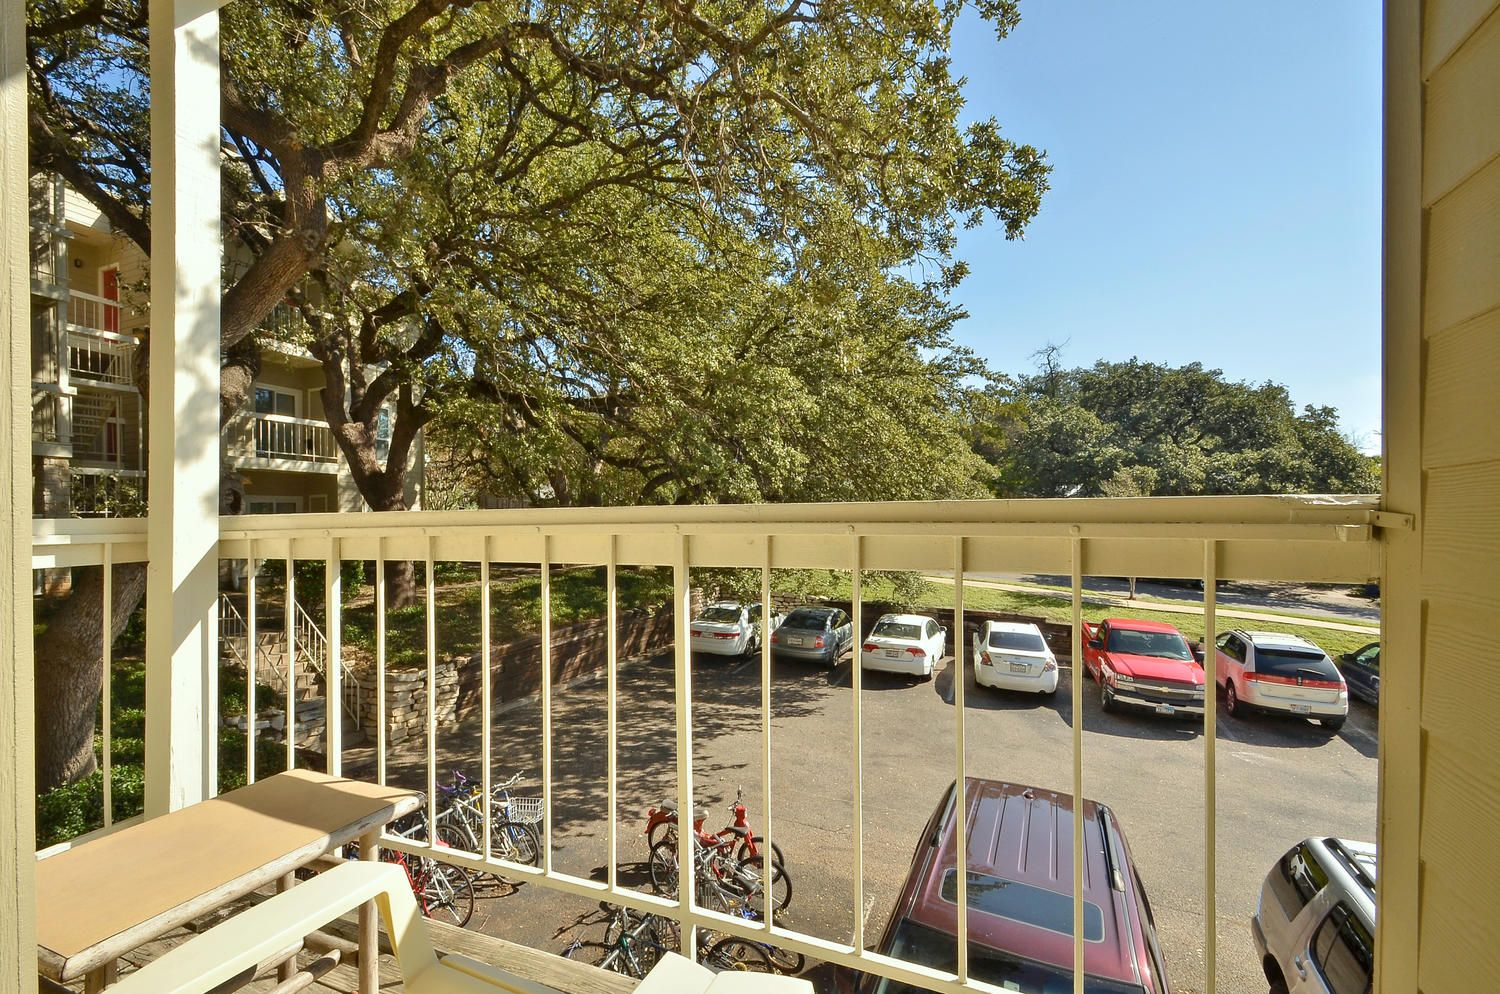 For more info on this or any of The Heyl Group Real Estate's listings visit www.locationaustin.com or call us today!